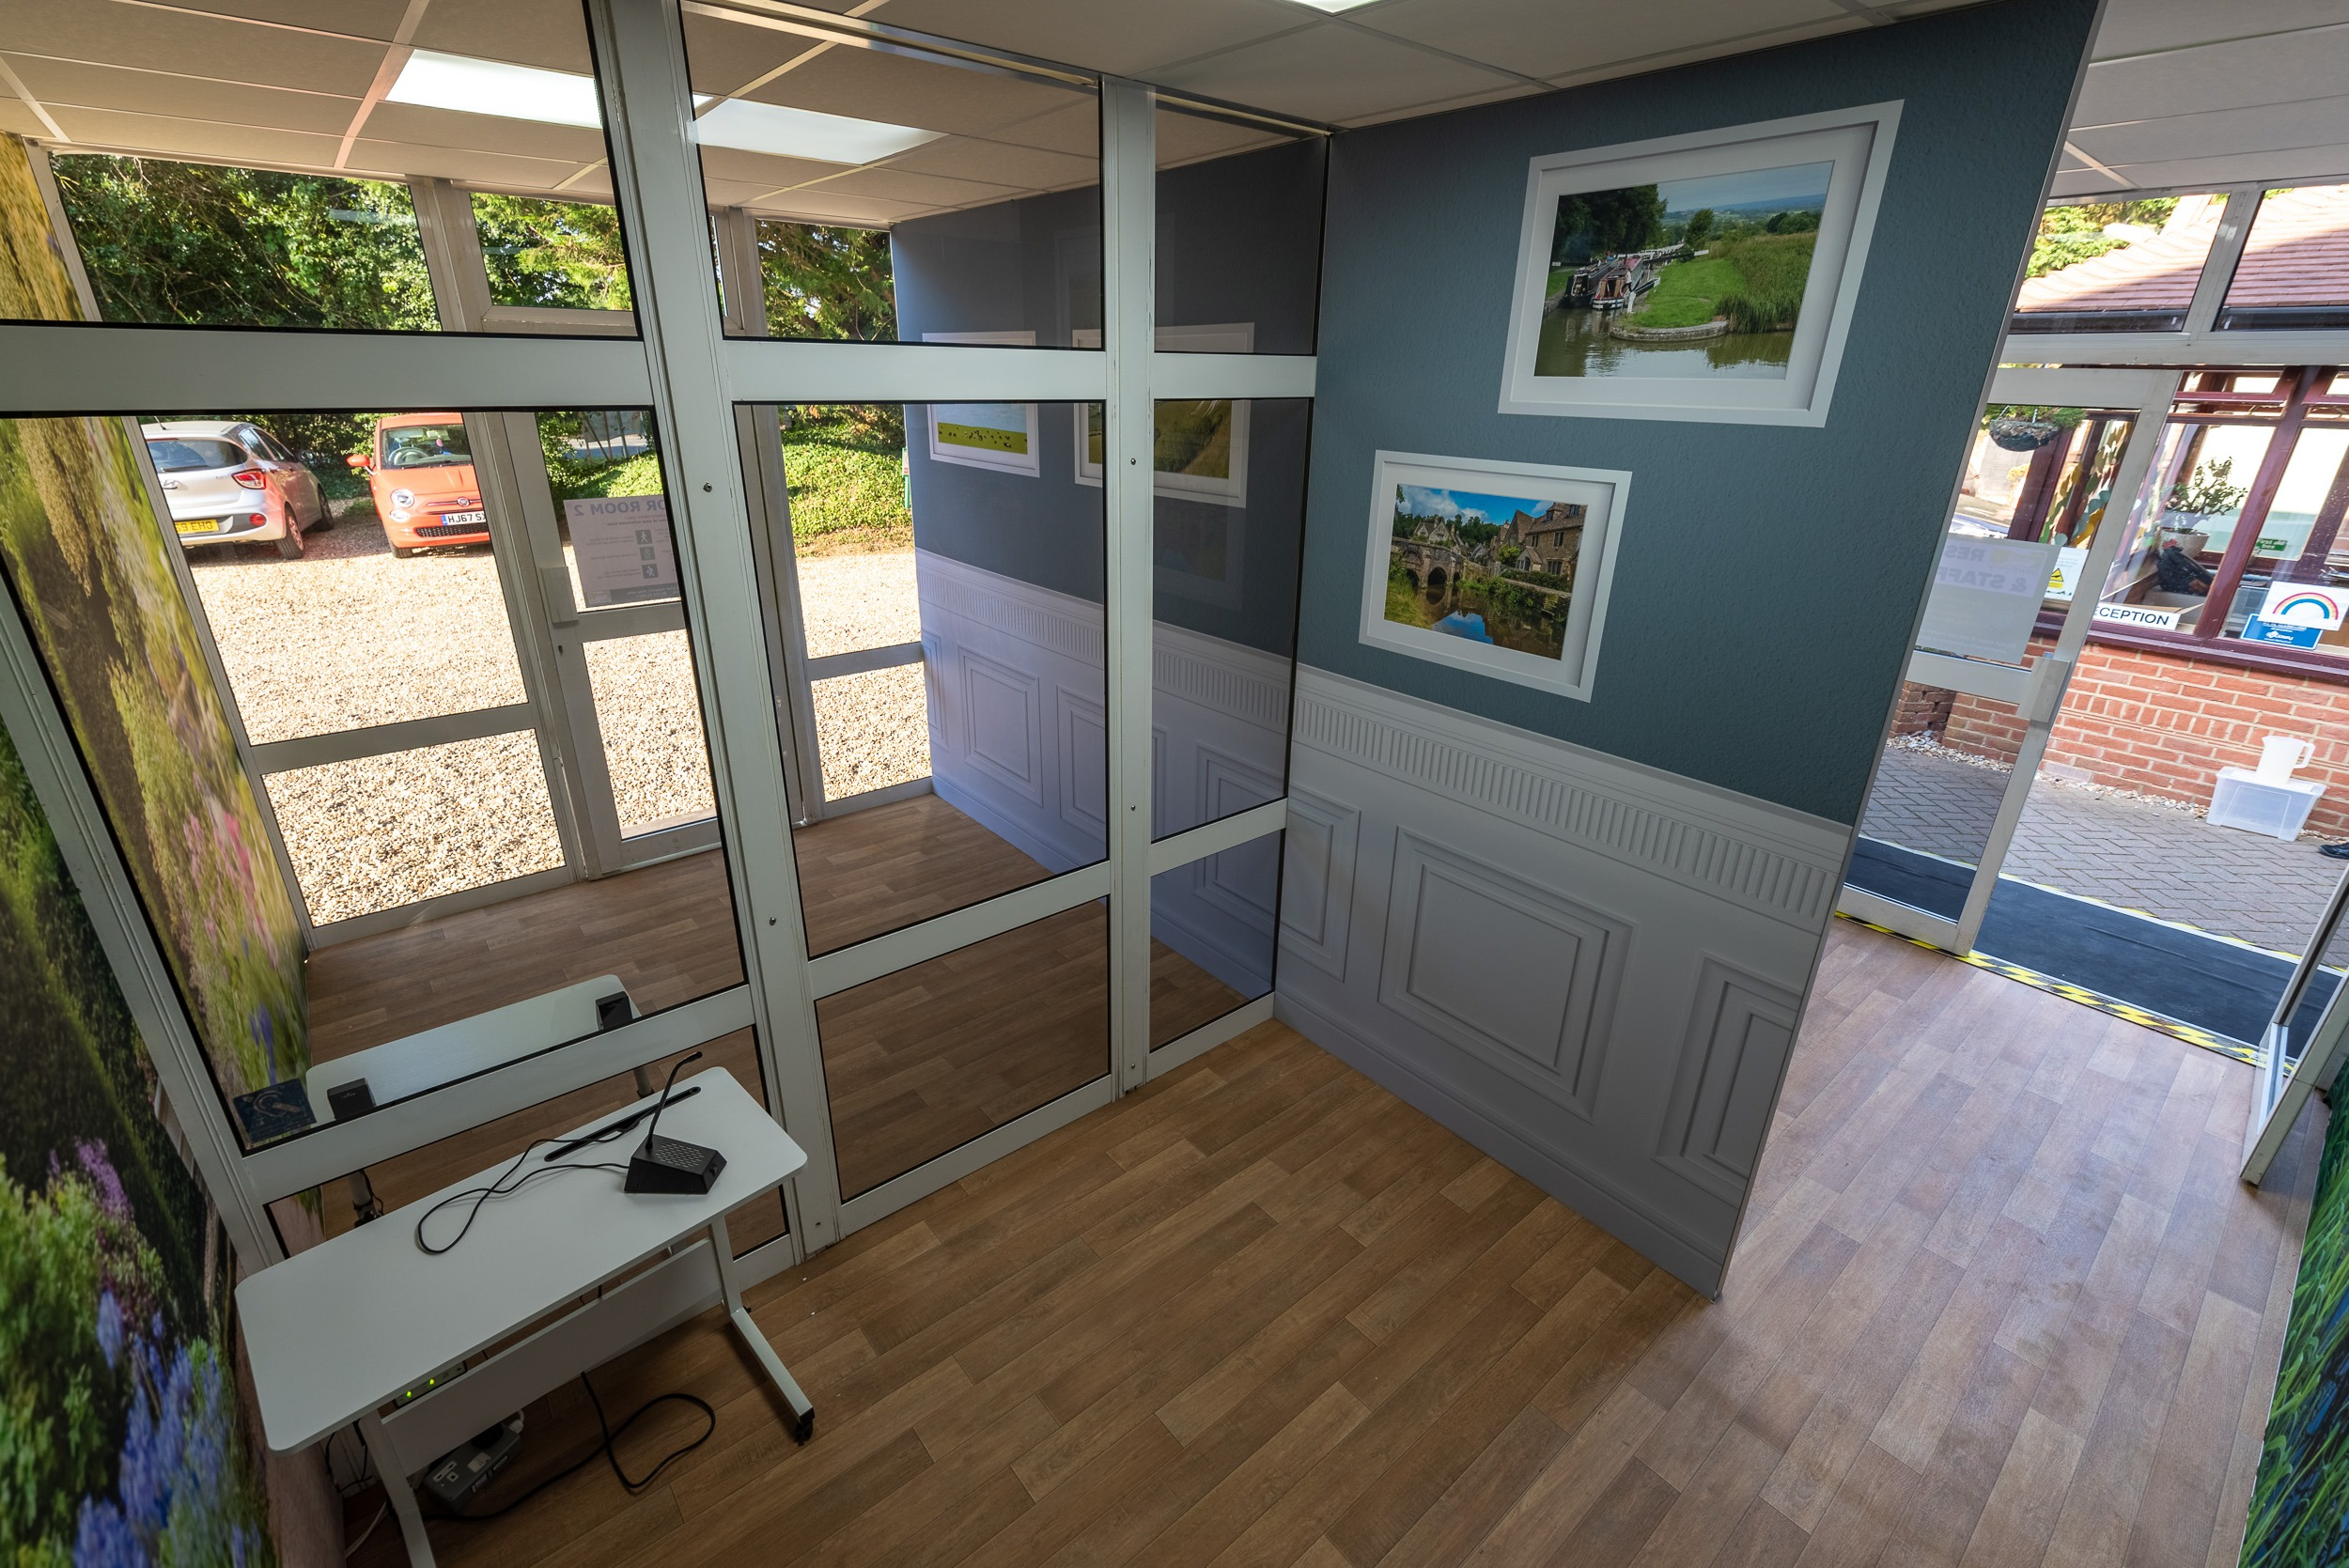 visiting pods for care homes